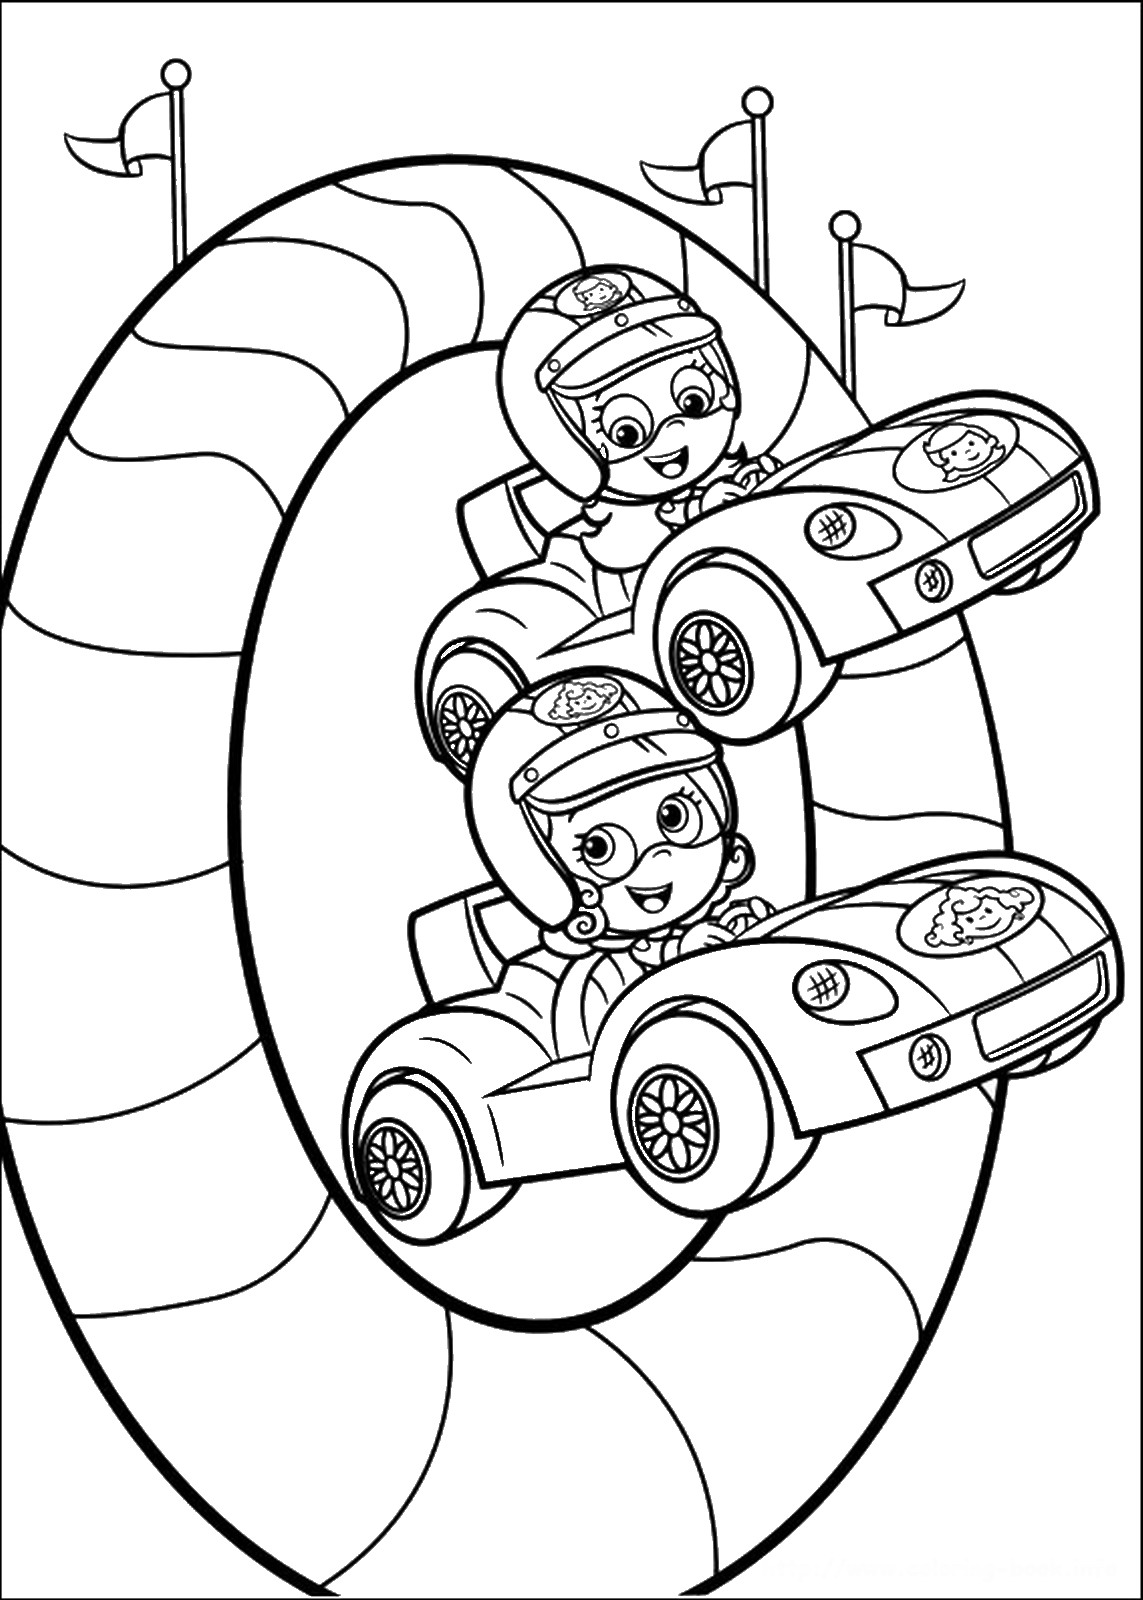 bubble_guppies_cl07 moreover bubble guppie page printable coloring sheets 1 on bubble guppie page printable coloring sheets further bubble guppie page printable coloring sheets 2 on bubble guppie page printable coloring sheets together with bubble guppies coloring pages on bubble guppie page printable coloring sheets likewise bubble guppies on bubble guppie page printable coloring sheets